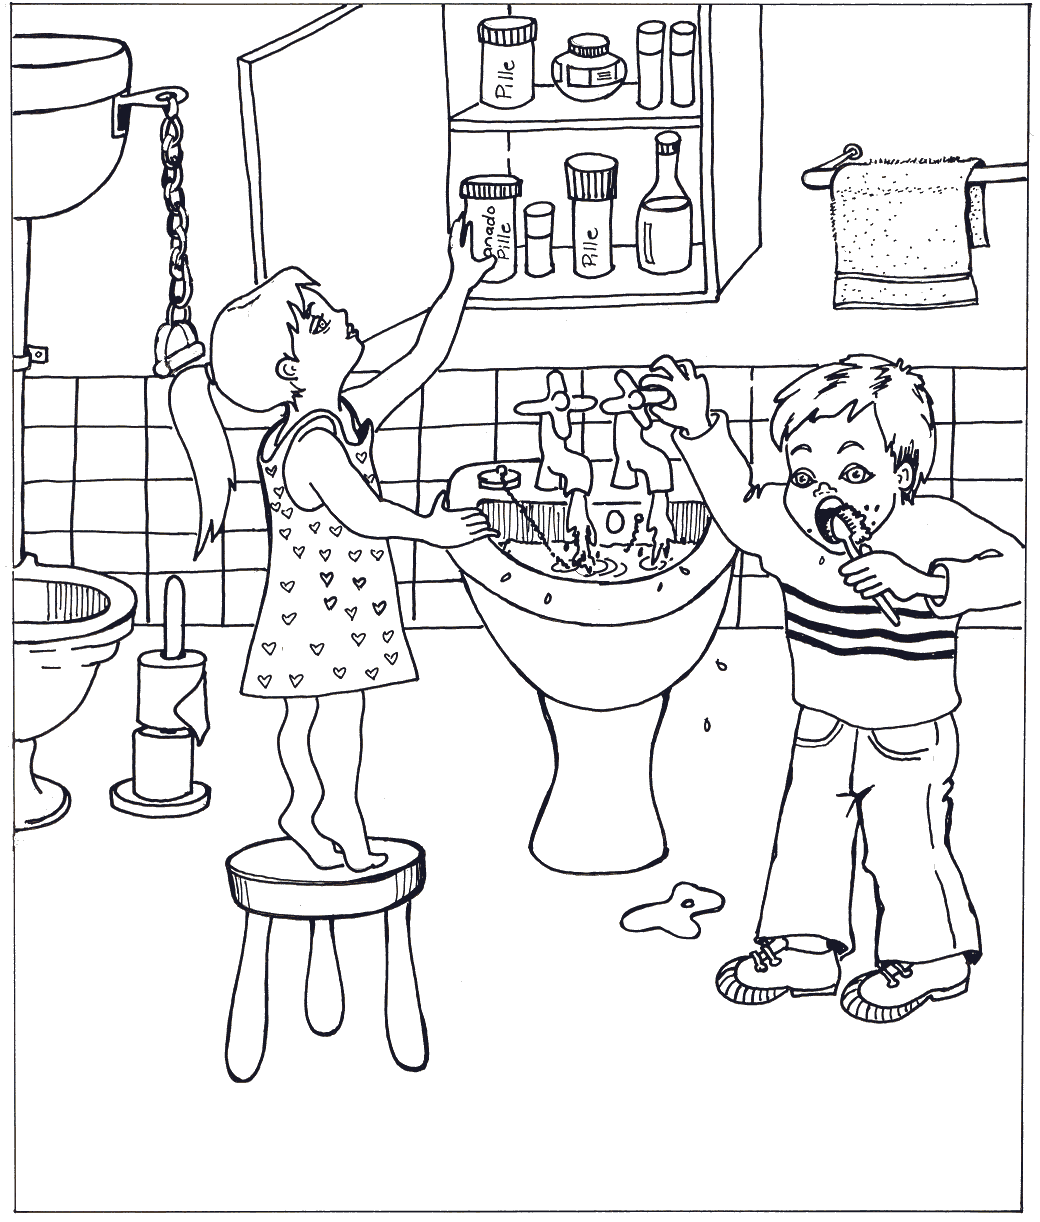 Bathroom Safety Hazards Worksheet